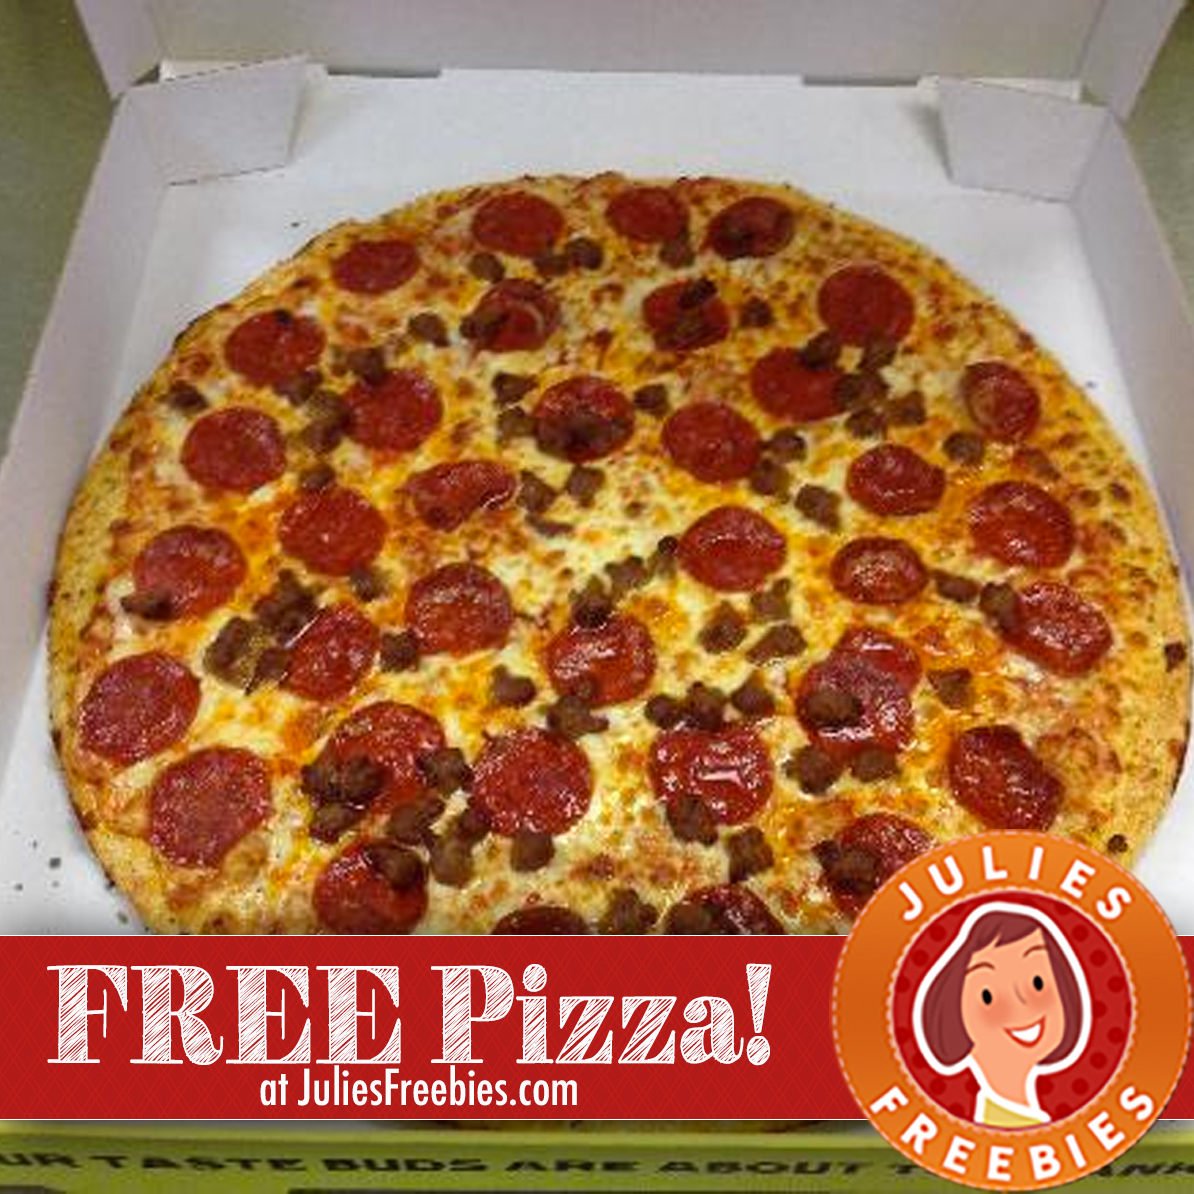 Here Is An Offer Where You Can Get A Free Pizza At Hungry Howies Medium 1 Topping By Using The Code BSM576V2 Checkout